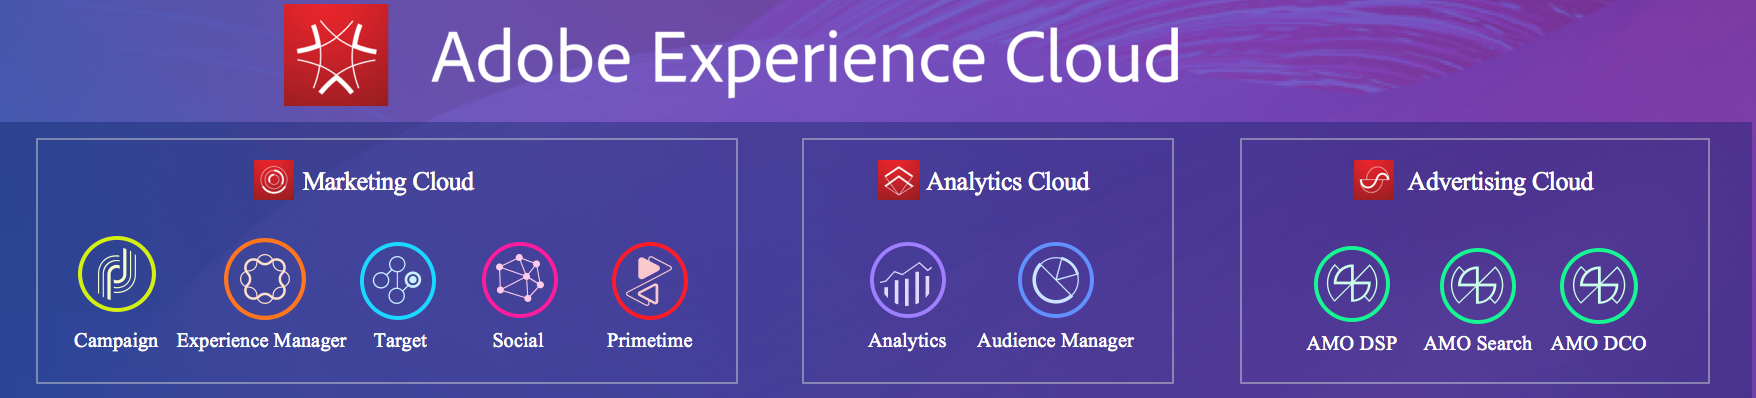 features of adobe experience cloud and its impacts